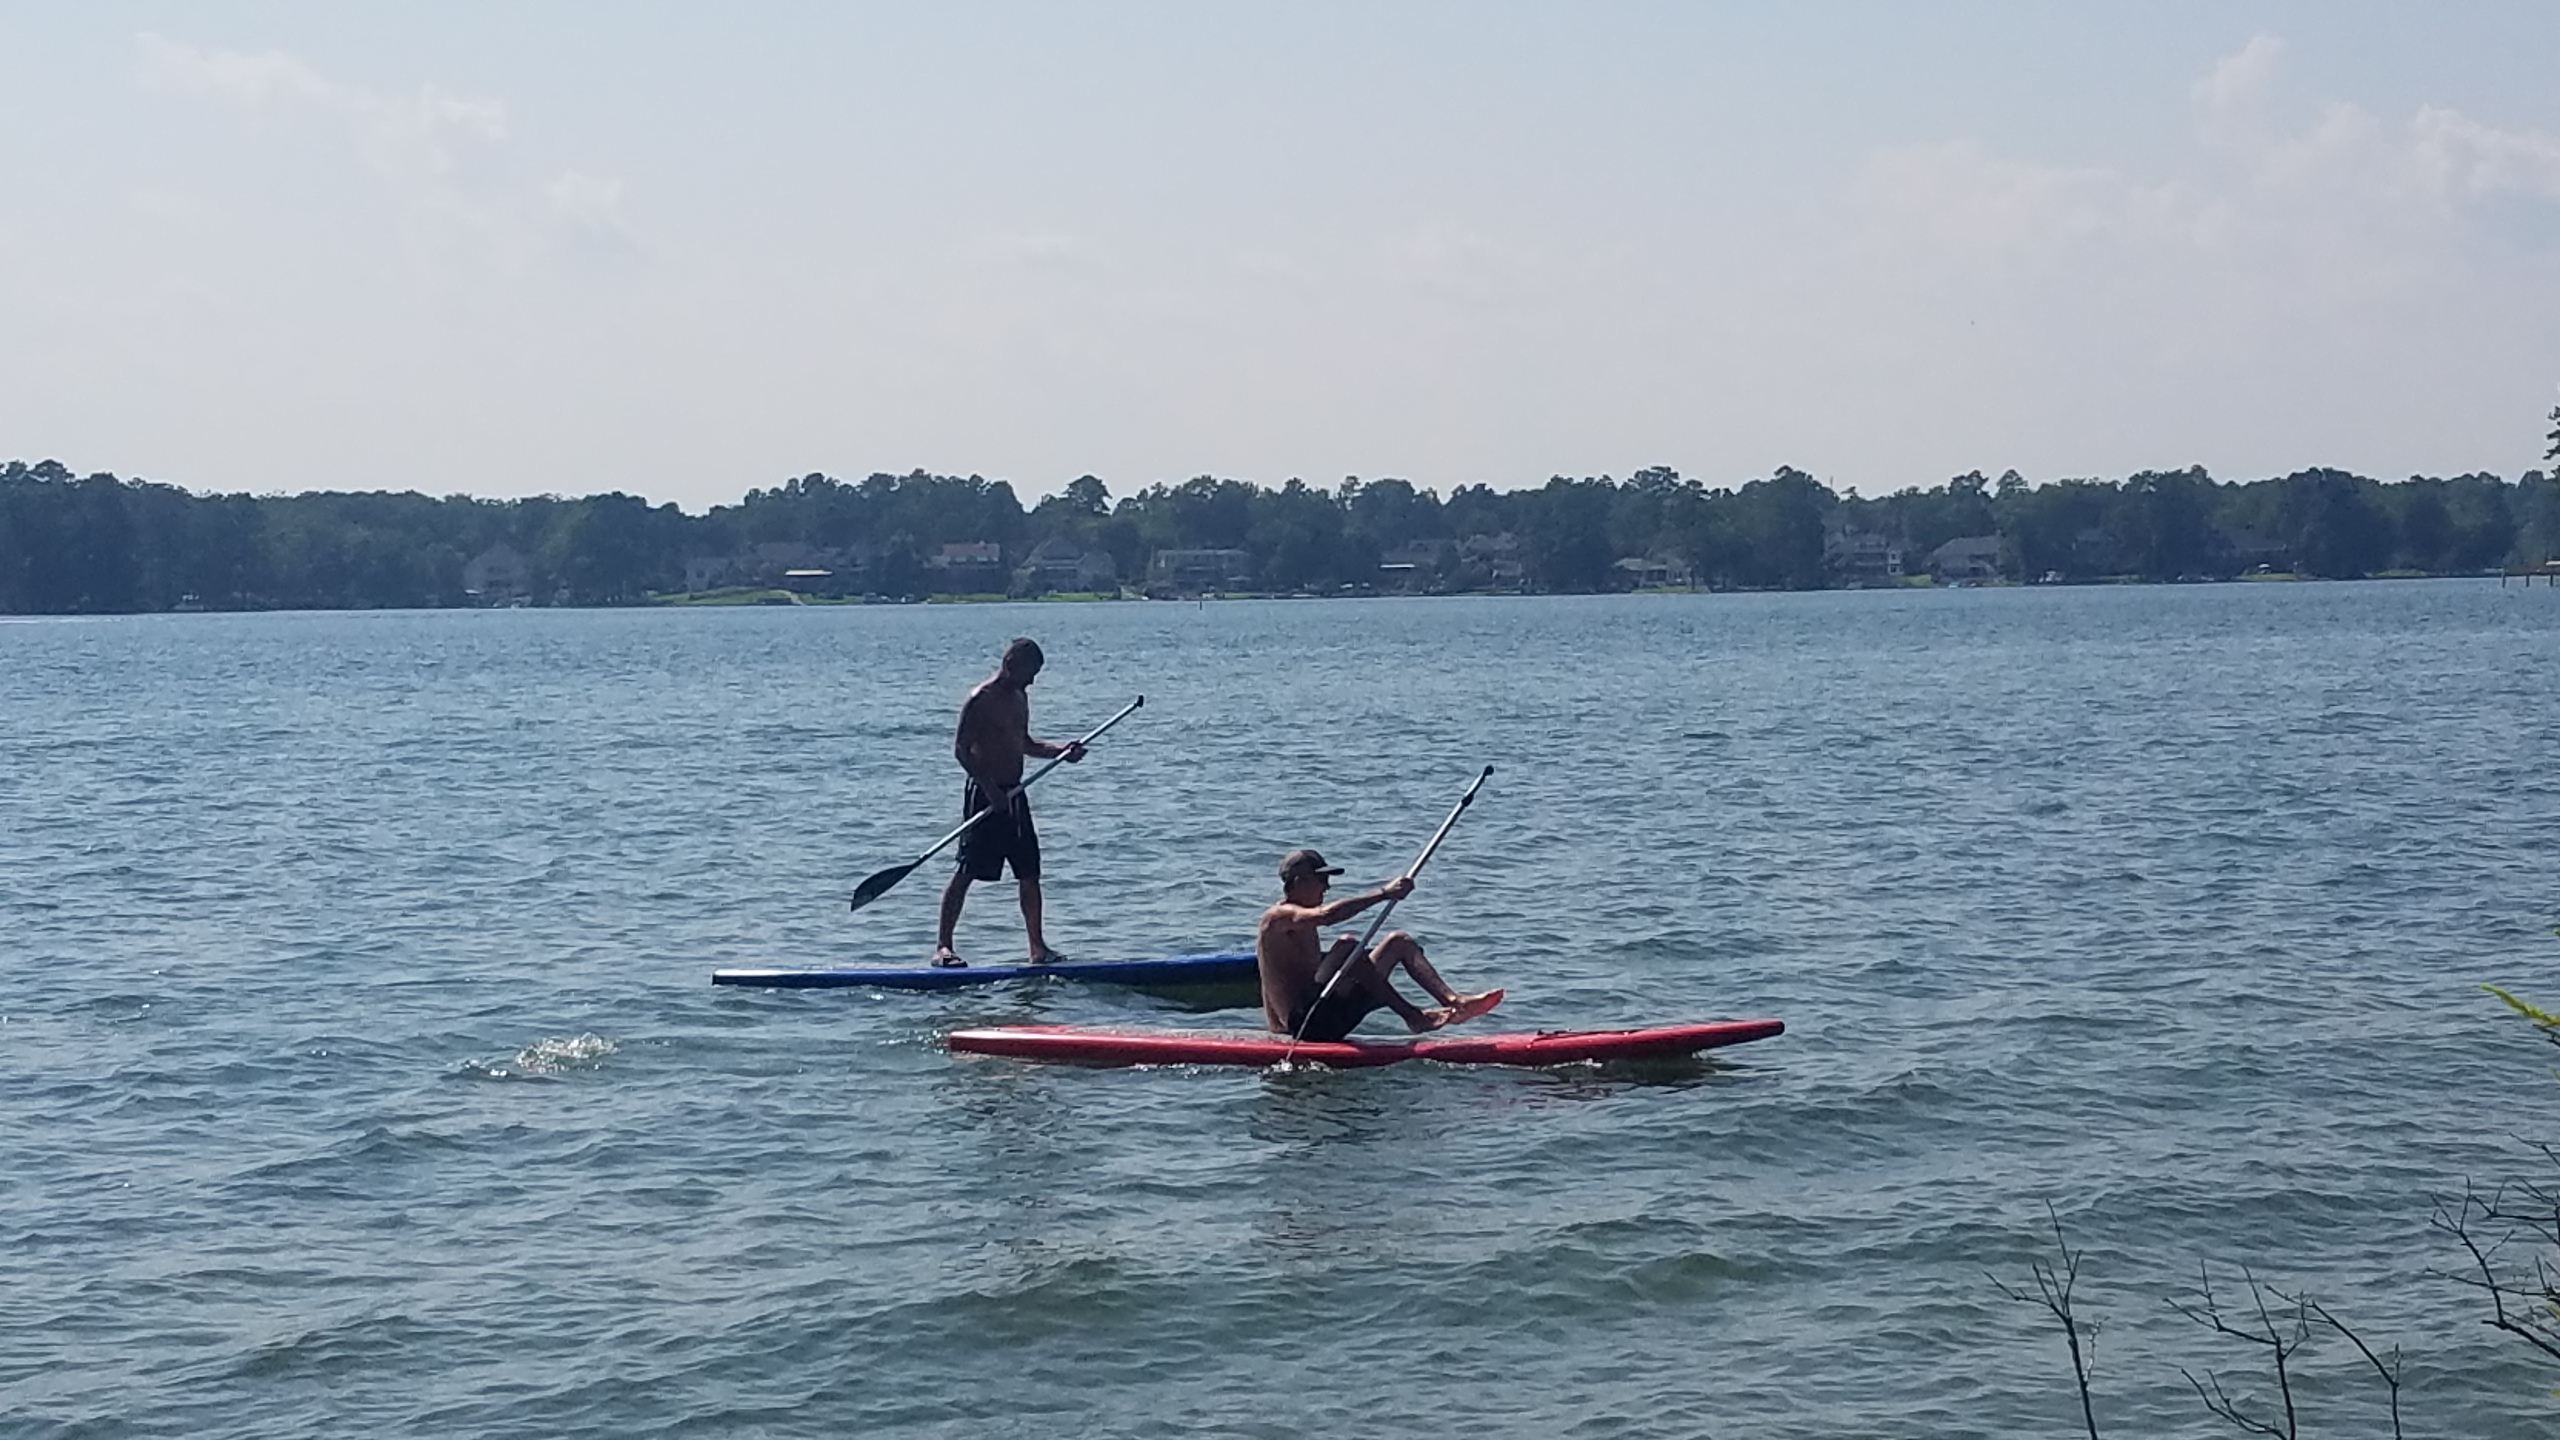 AquaFun Paddle rental Lake Murray